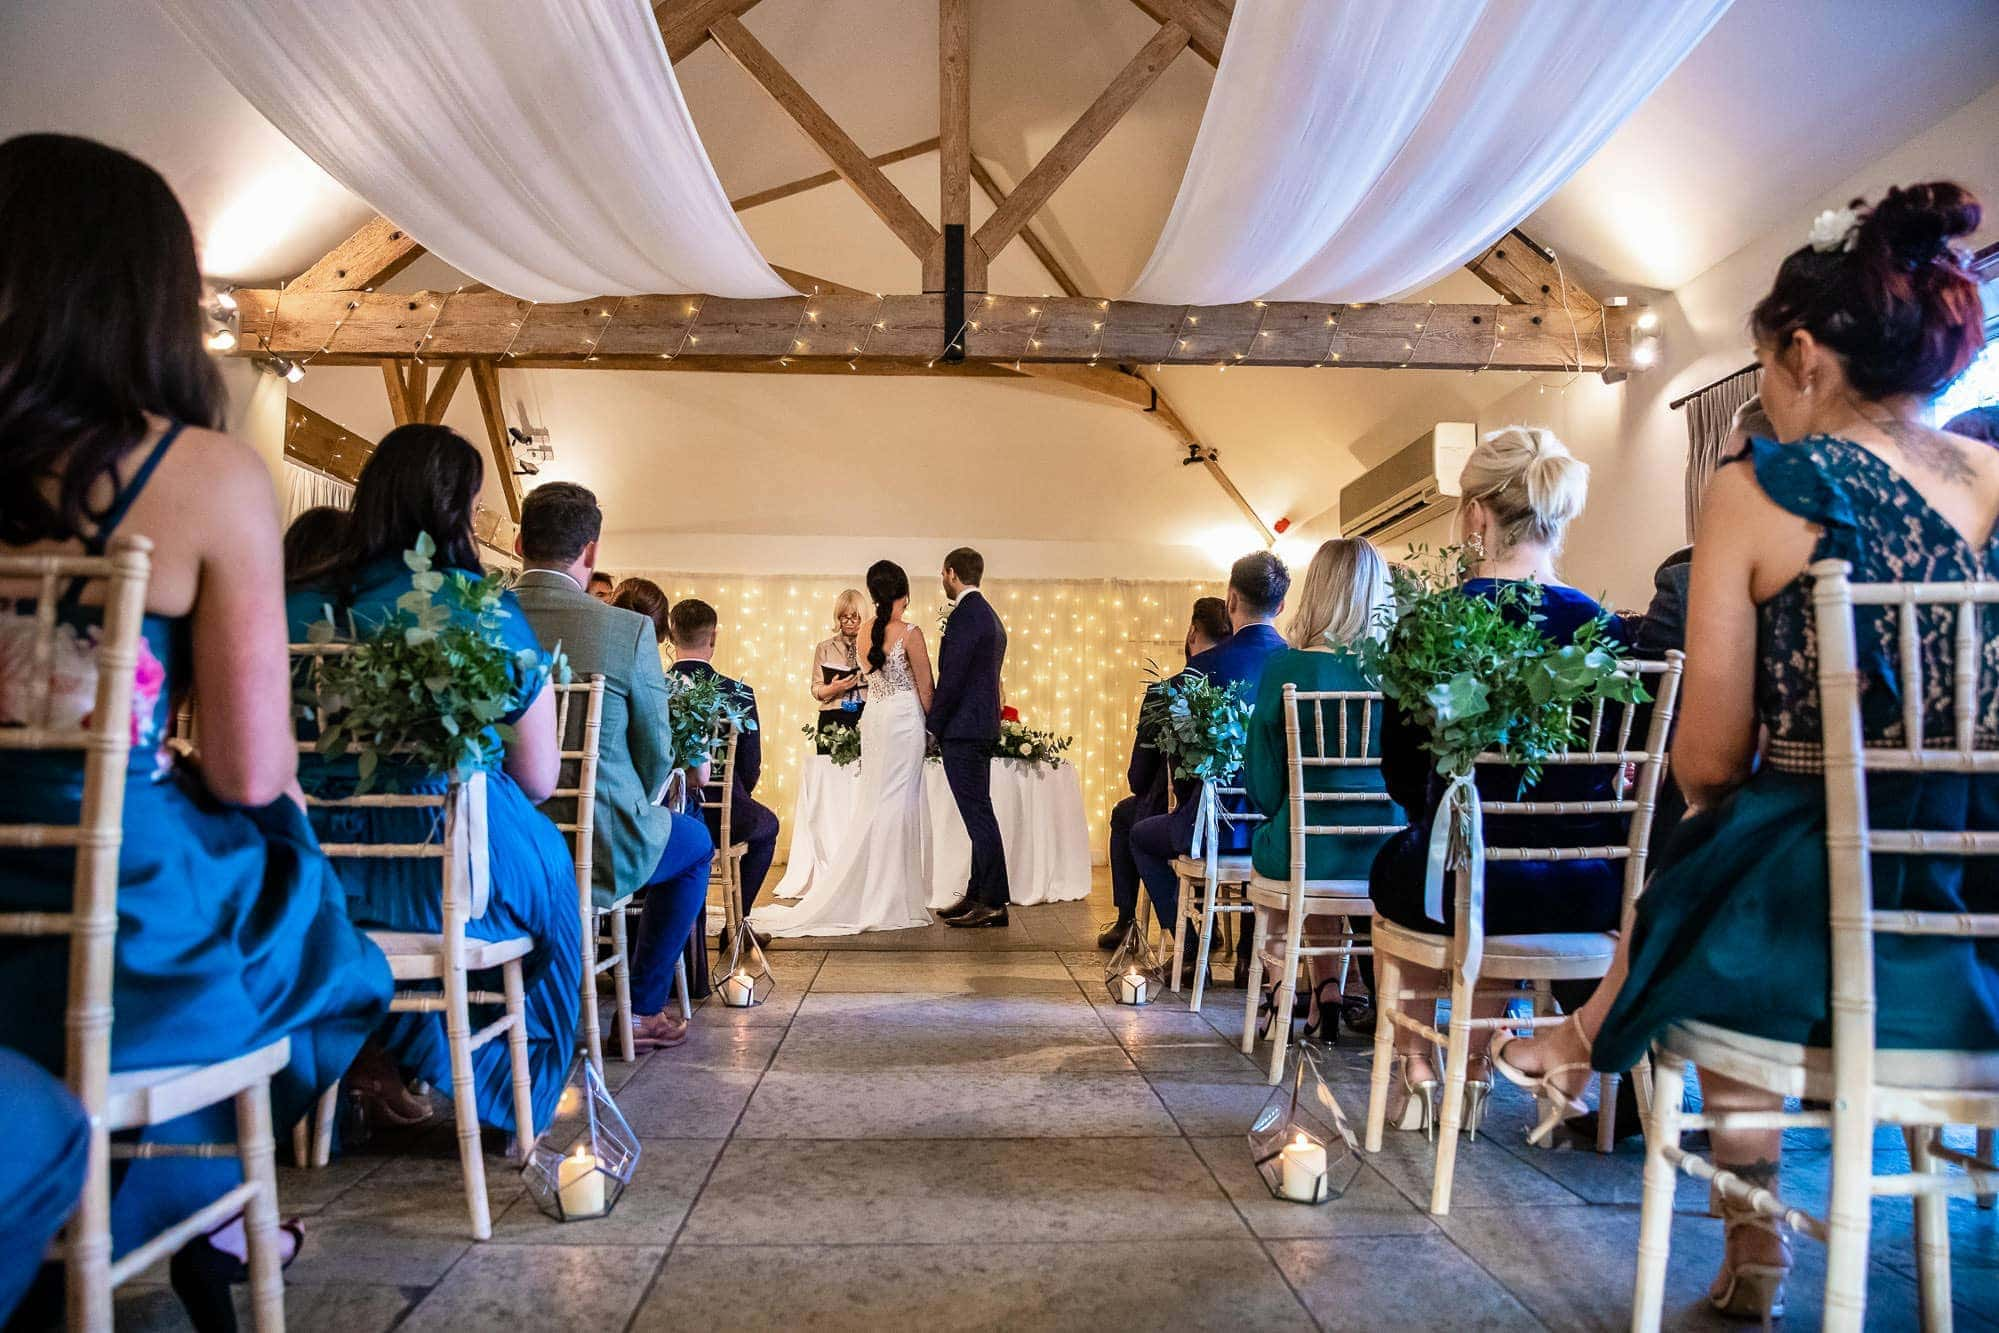 Farbridge Wedding Ceremony - shot from the back of the room